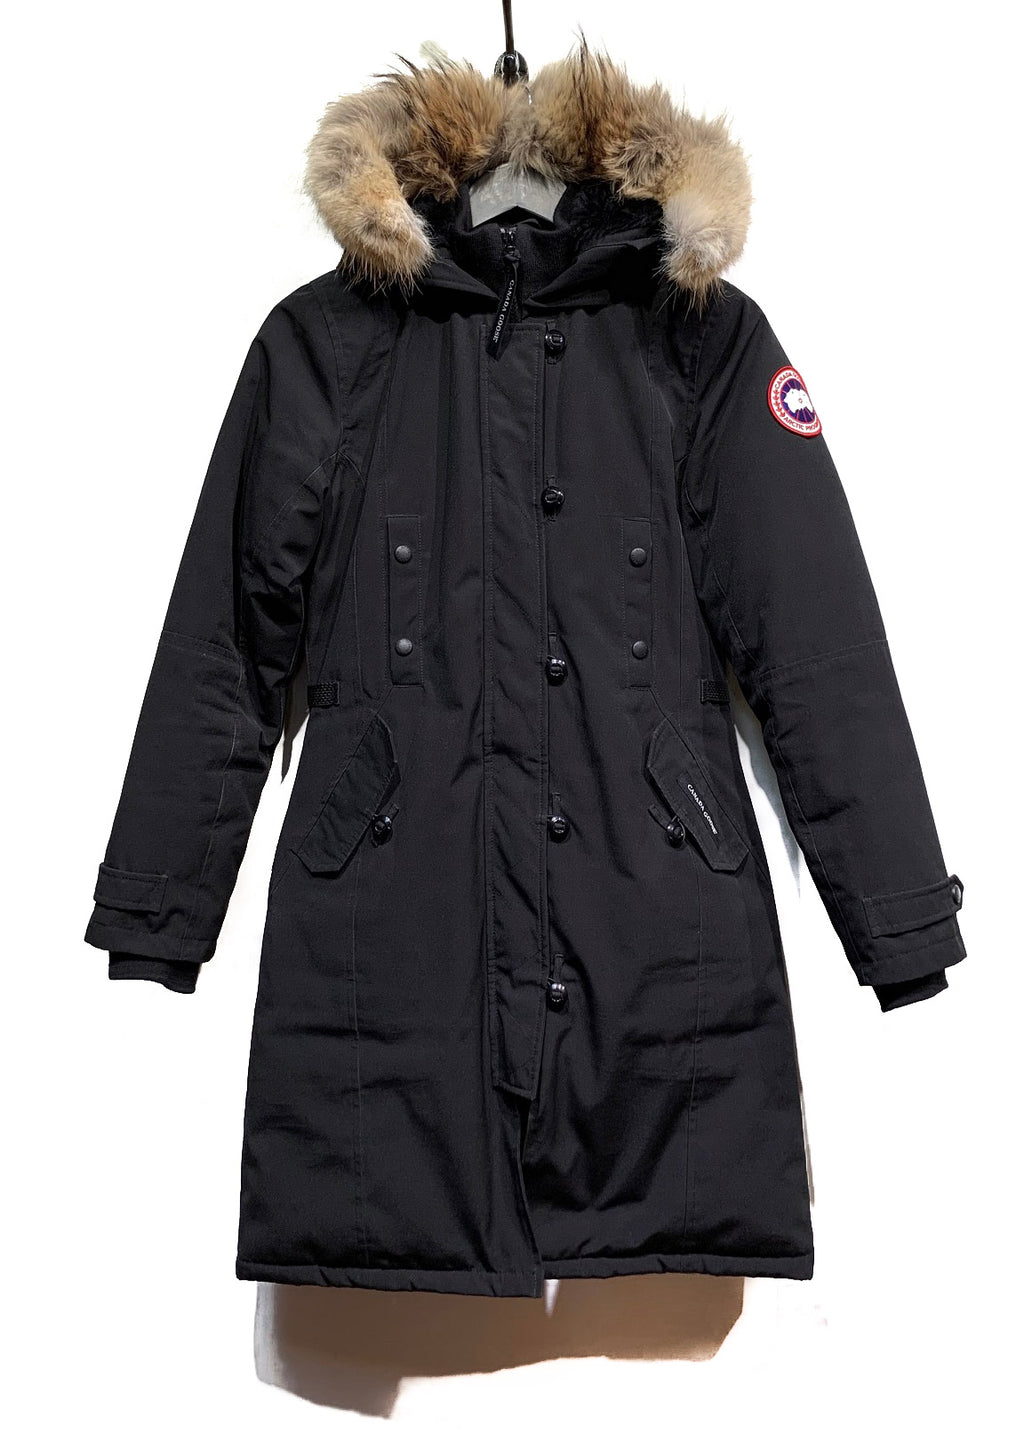 Canada Goose 2506L Black Kenzington Down Filled Parka